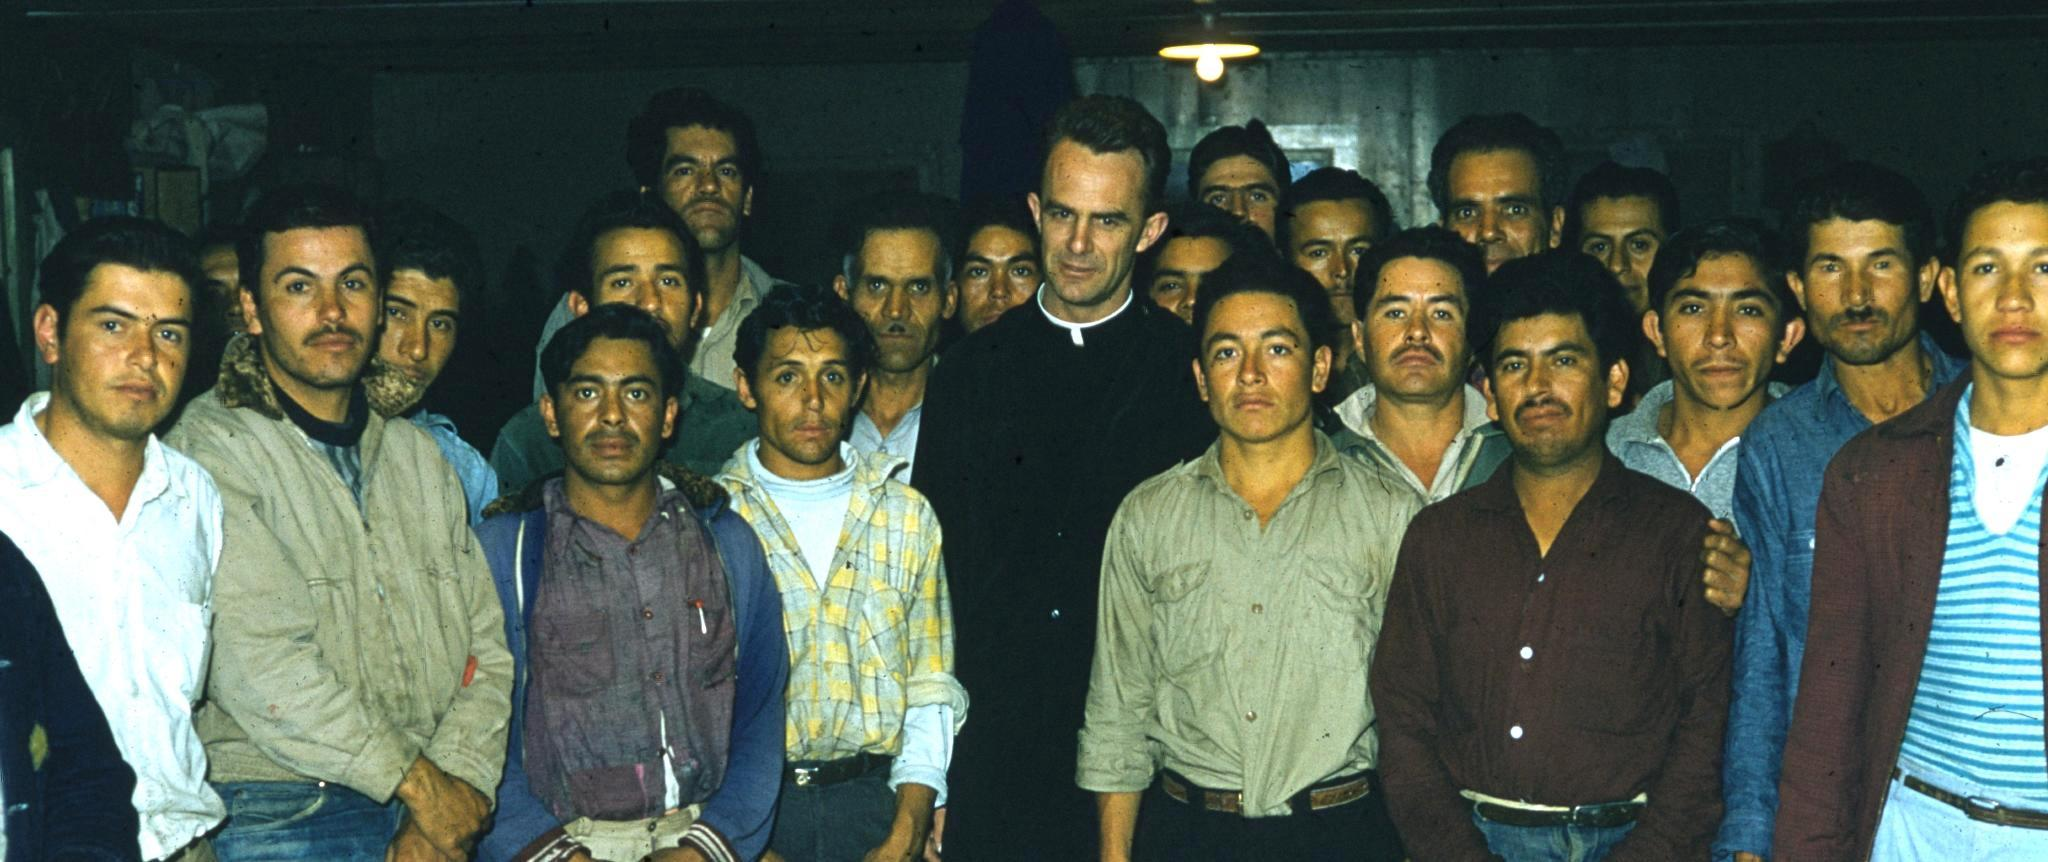 Bracero religious meeting in dormitory, Mandeville Isl., CA, April, 1958.